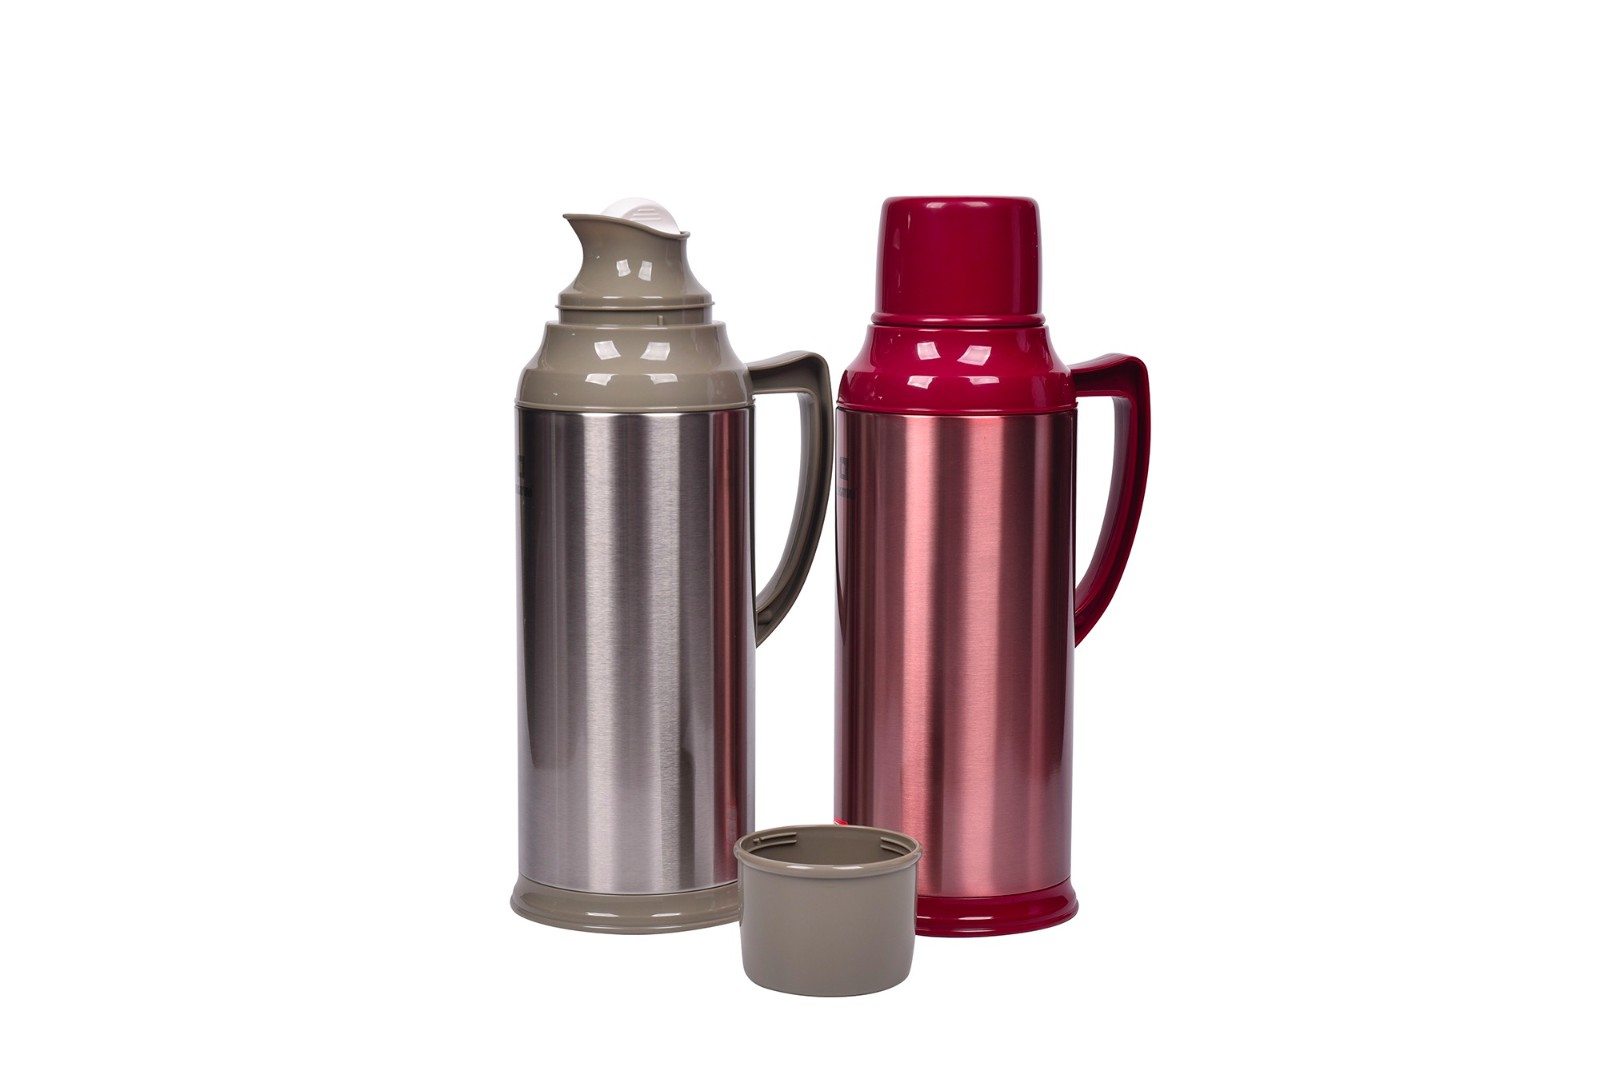 High quality 2.0L Stainless steel body thermos Quotes,China 2.0L Stainless steel body thermos Factory,2.0L Stainless steel body thermos Purchasing